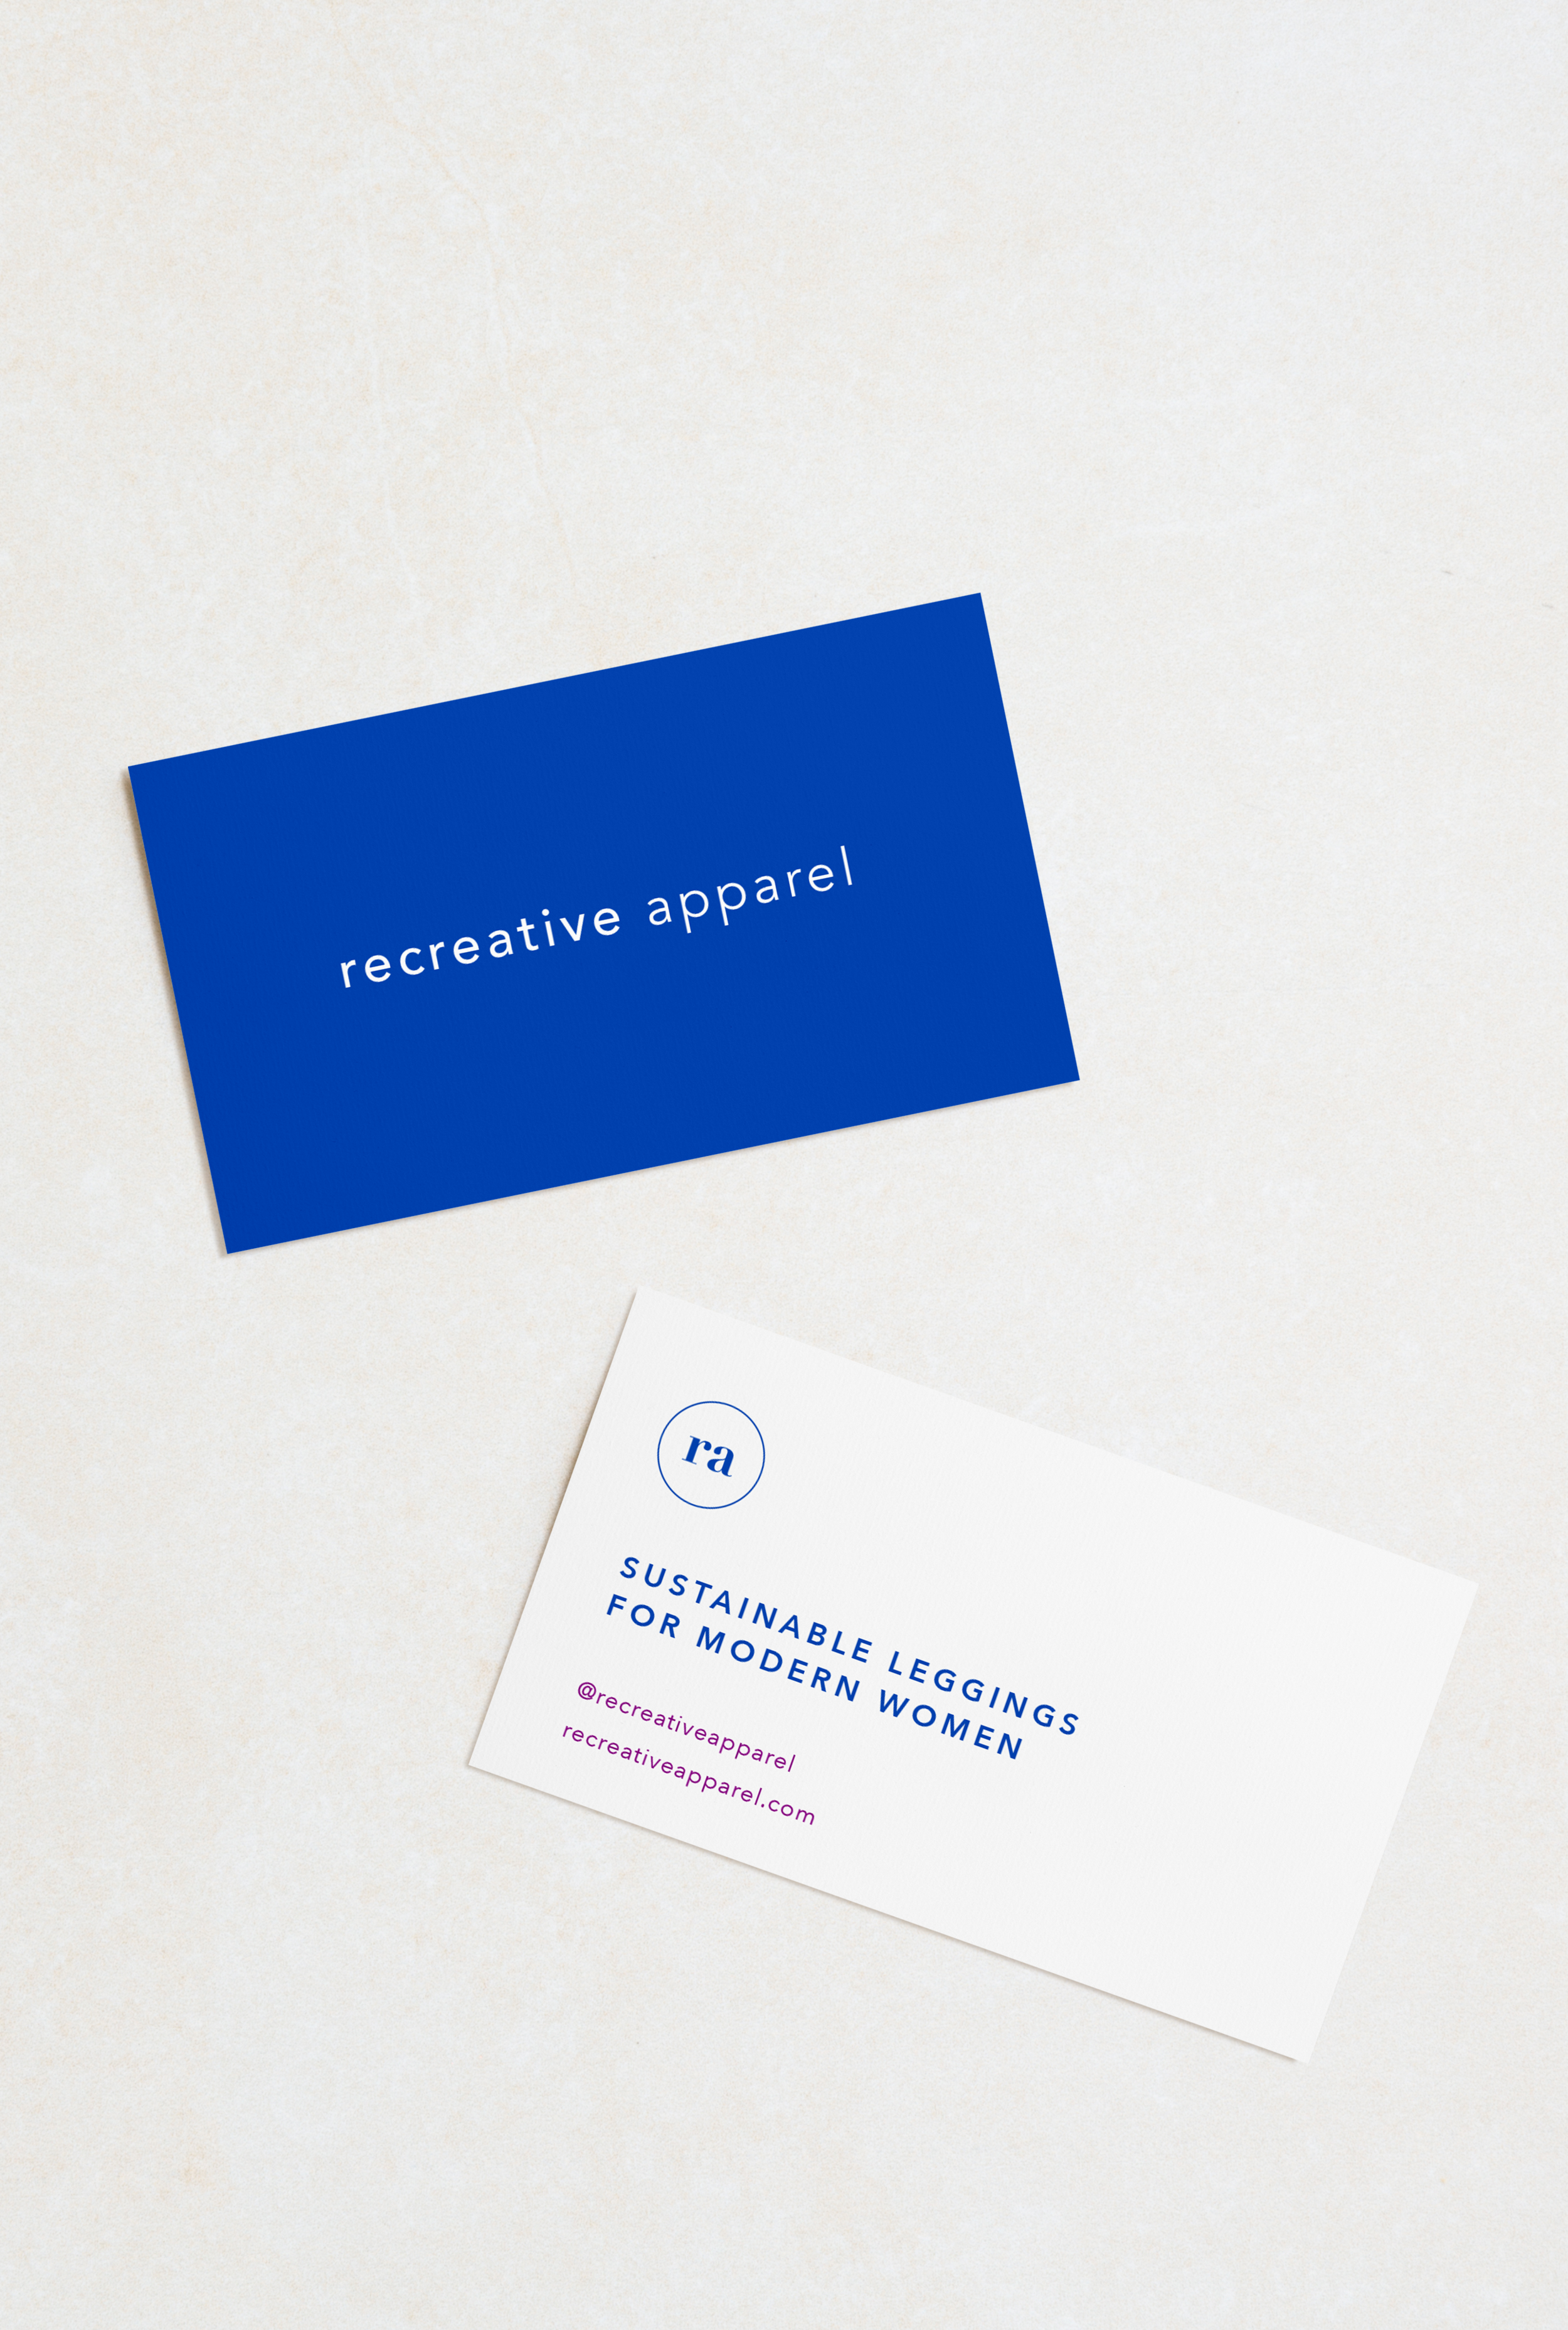 Bright blue business cards for Recreative Apparel with wordmark logo on the front